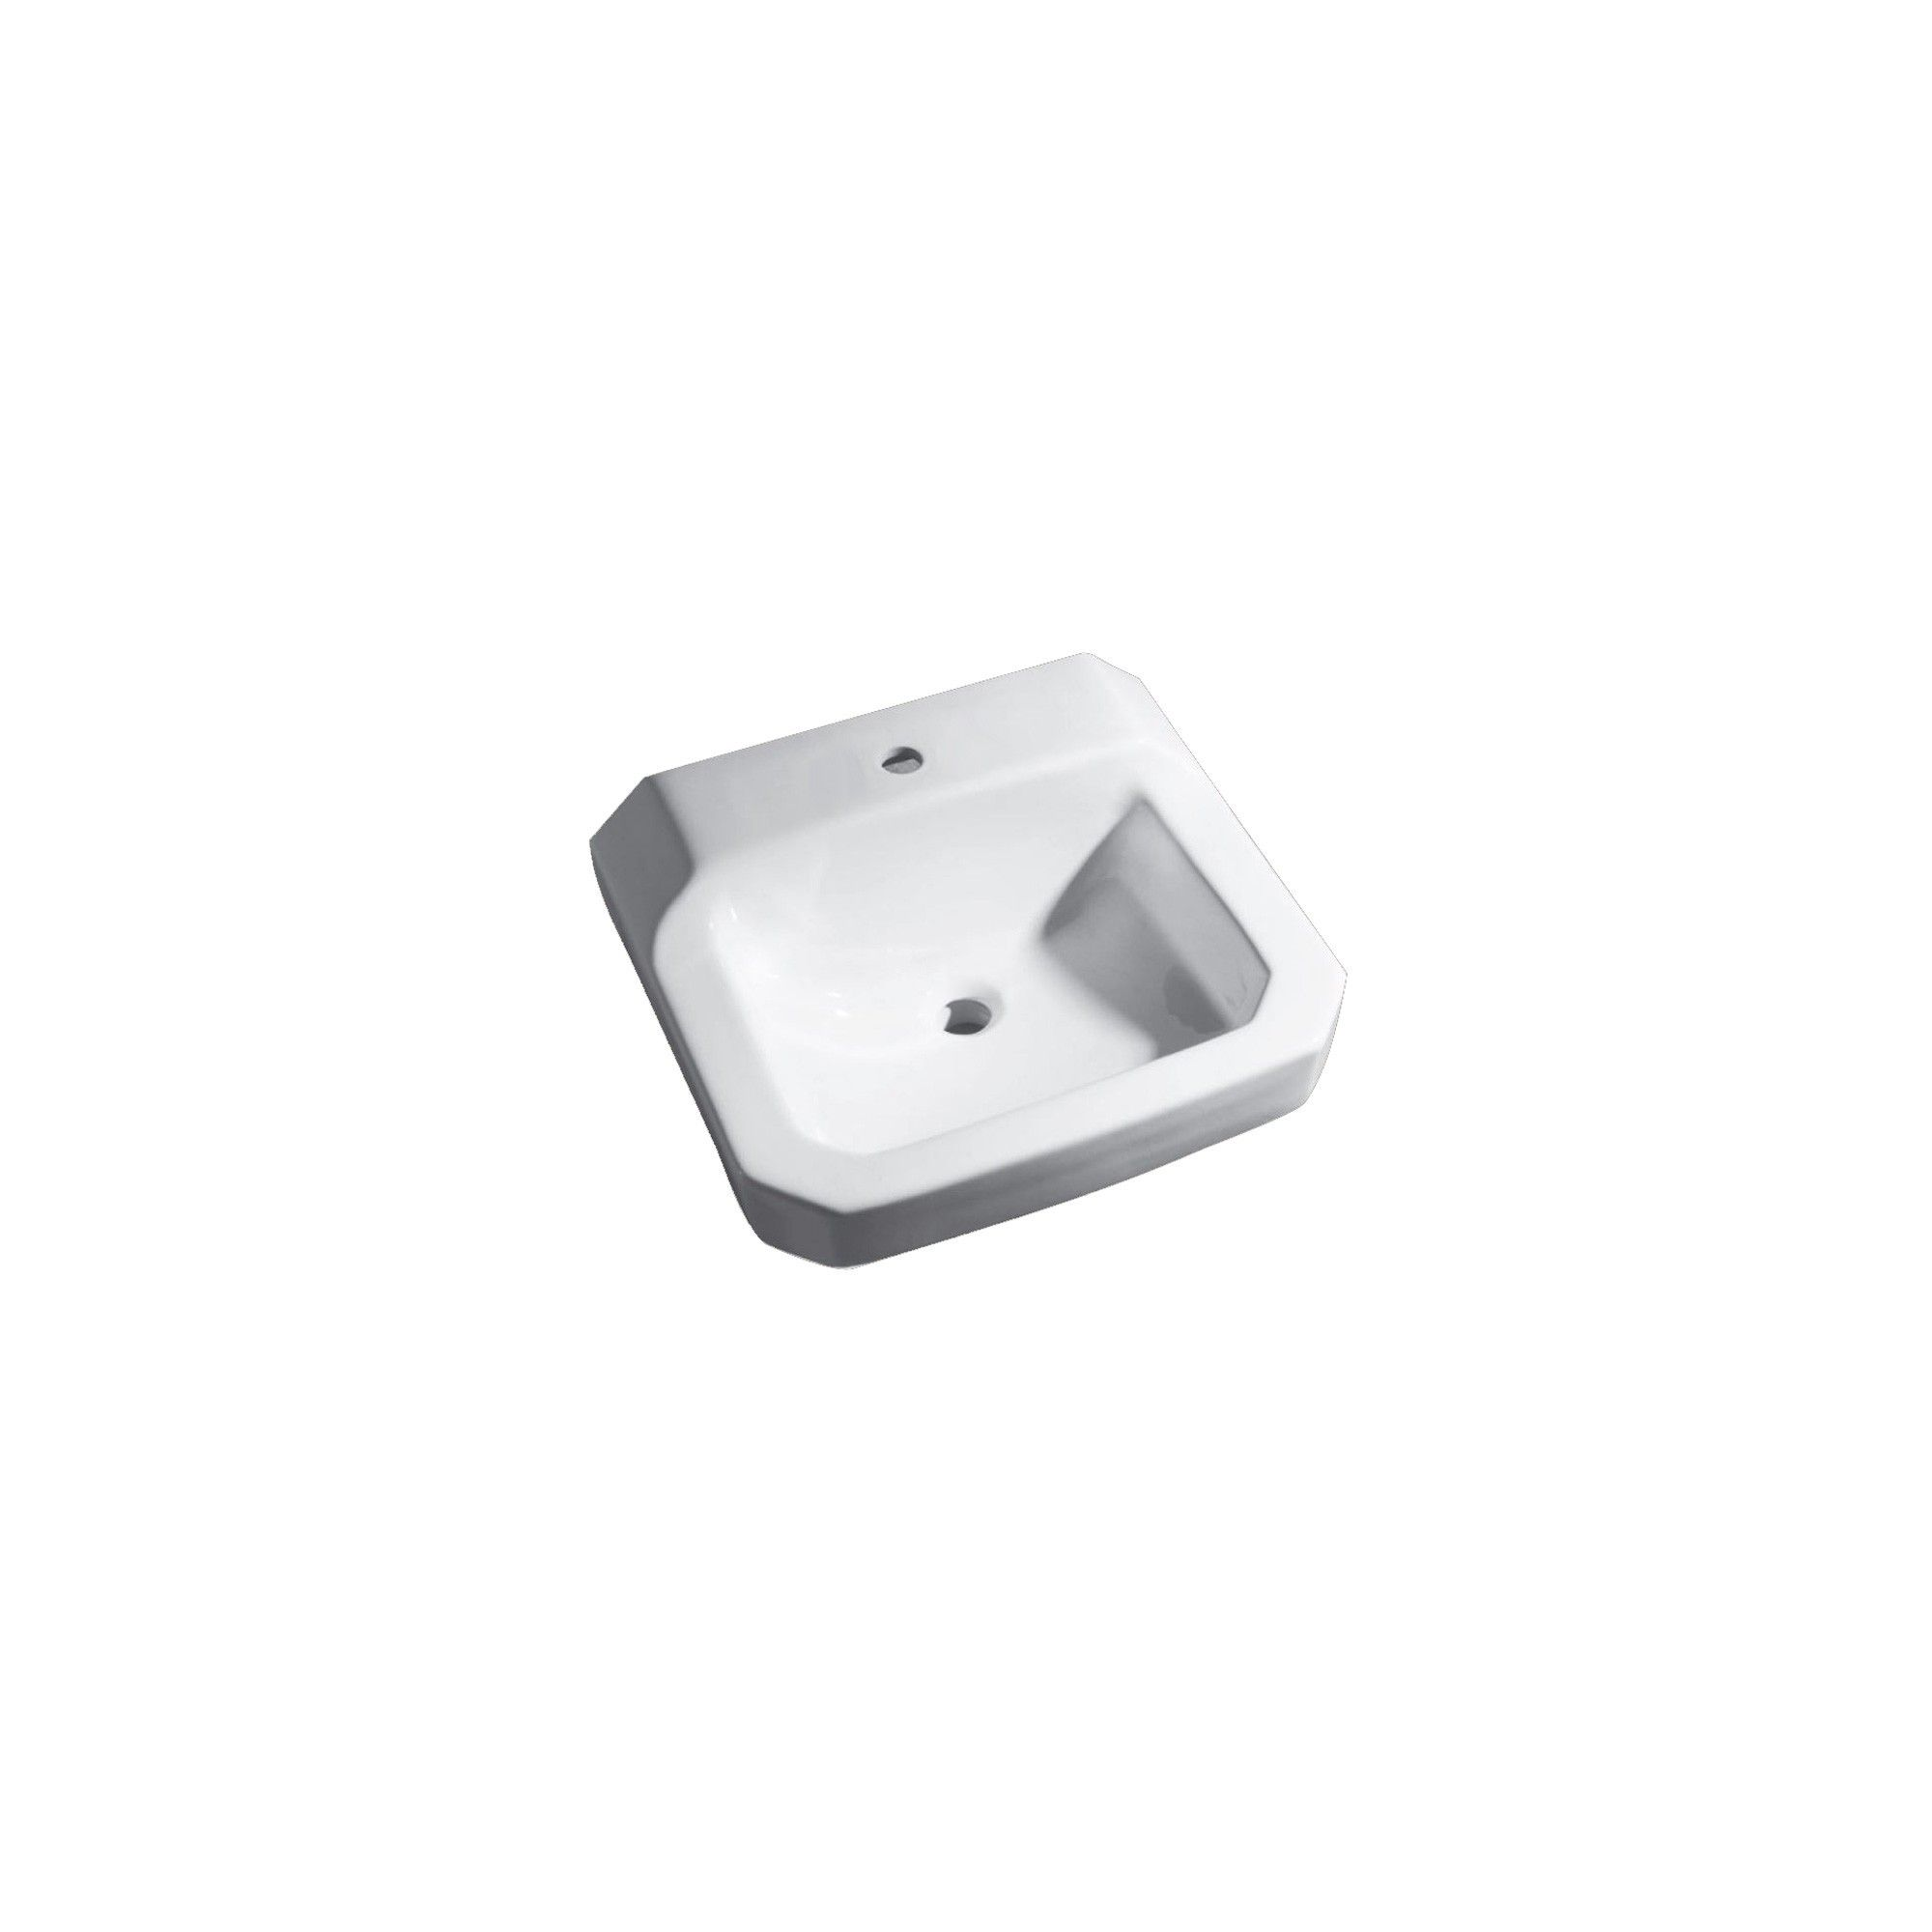 Proflo Pf5411 19 Wall Mounted Bathroom Sink With 1 Hole Drilled